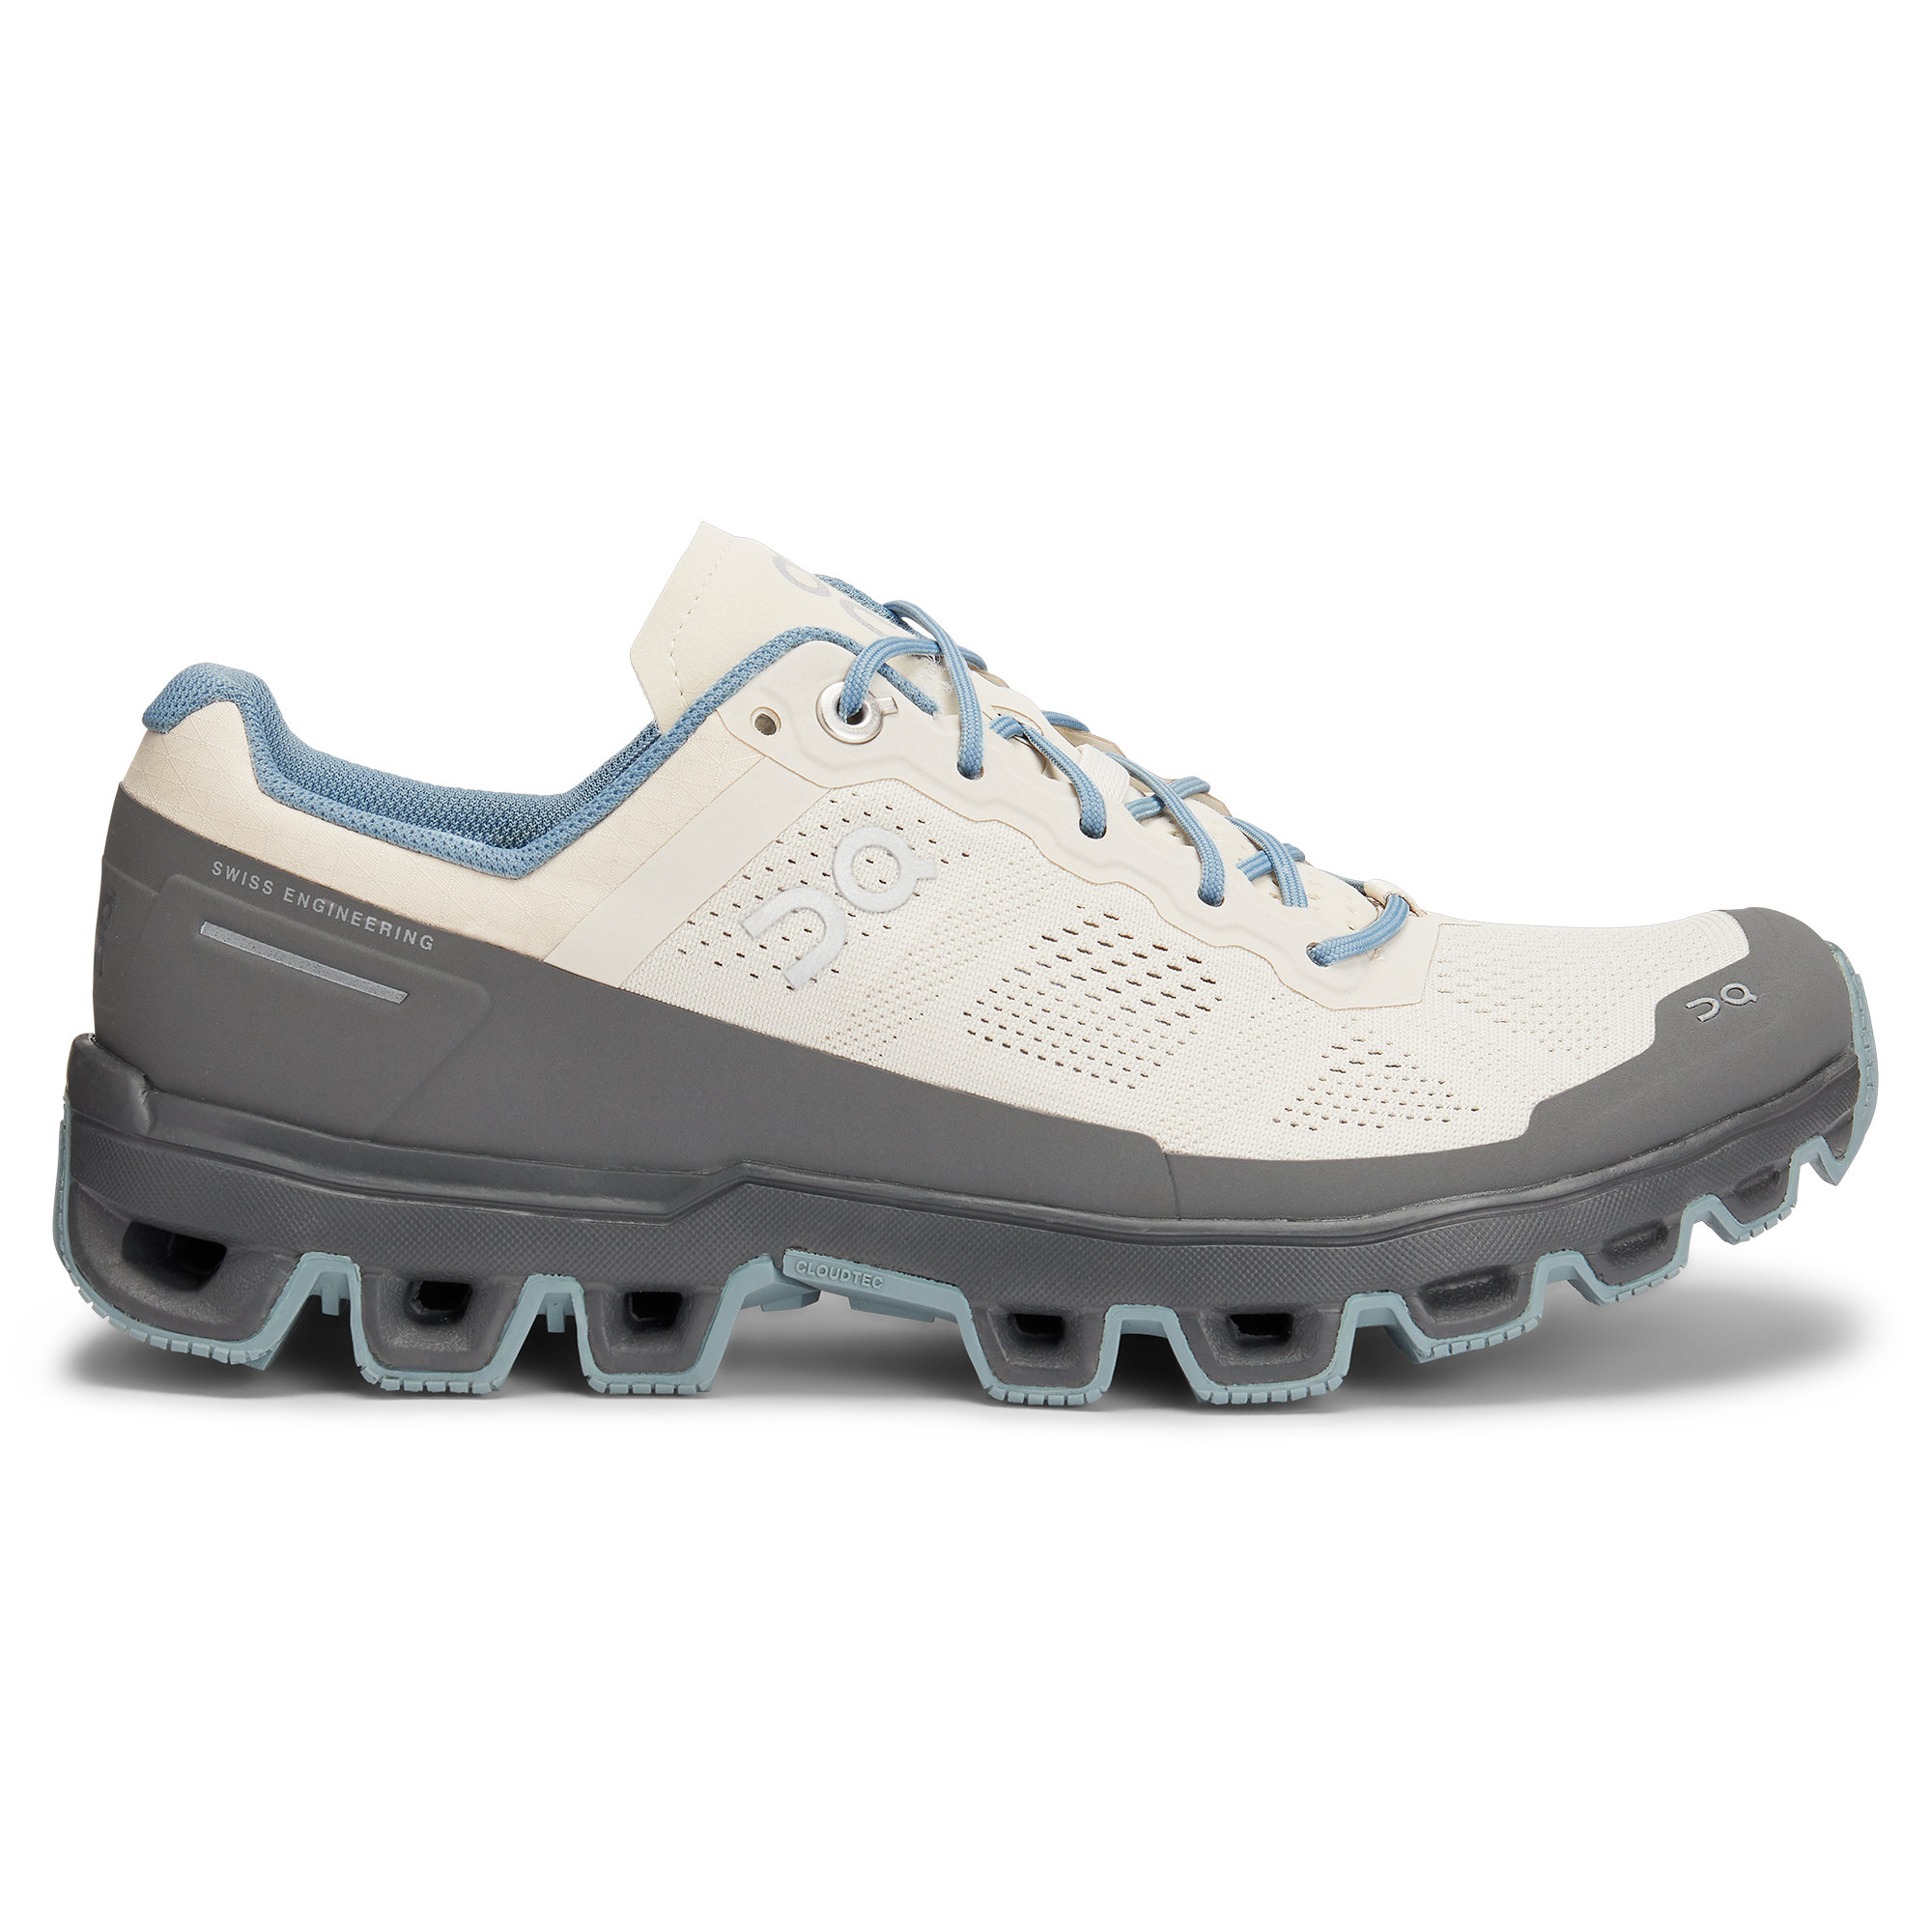 ON CLOUD On Running Women's Cloudventure Shoes